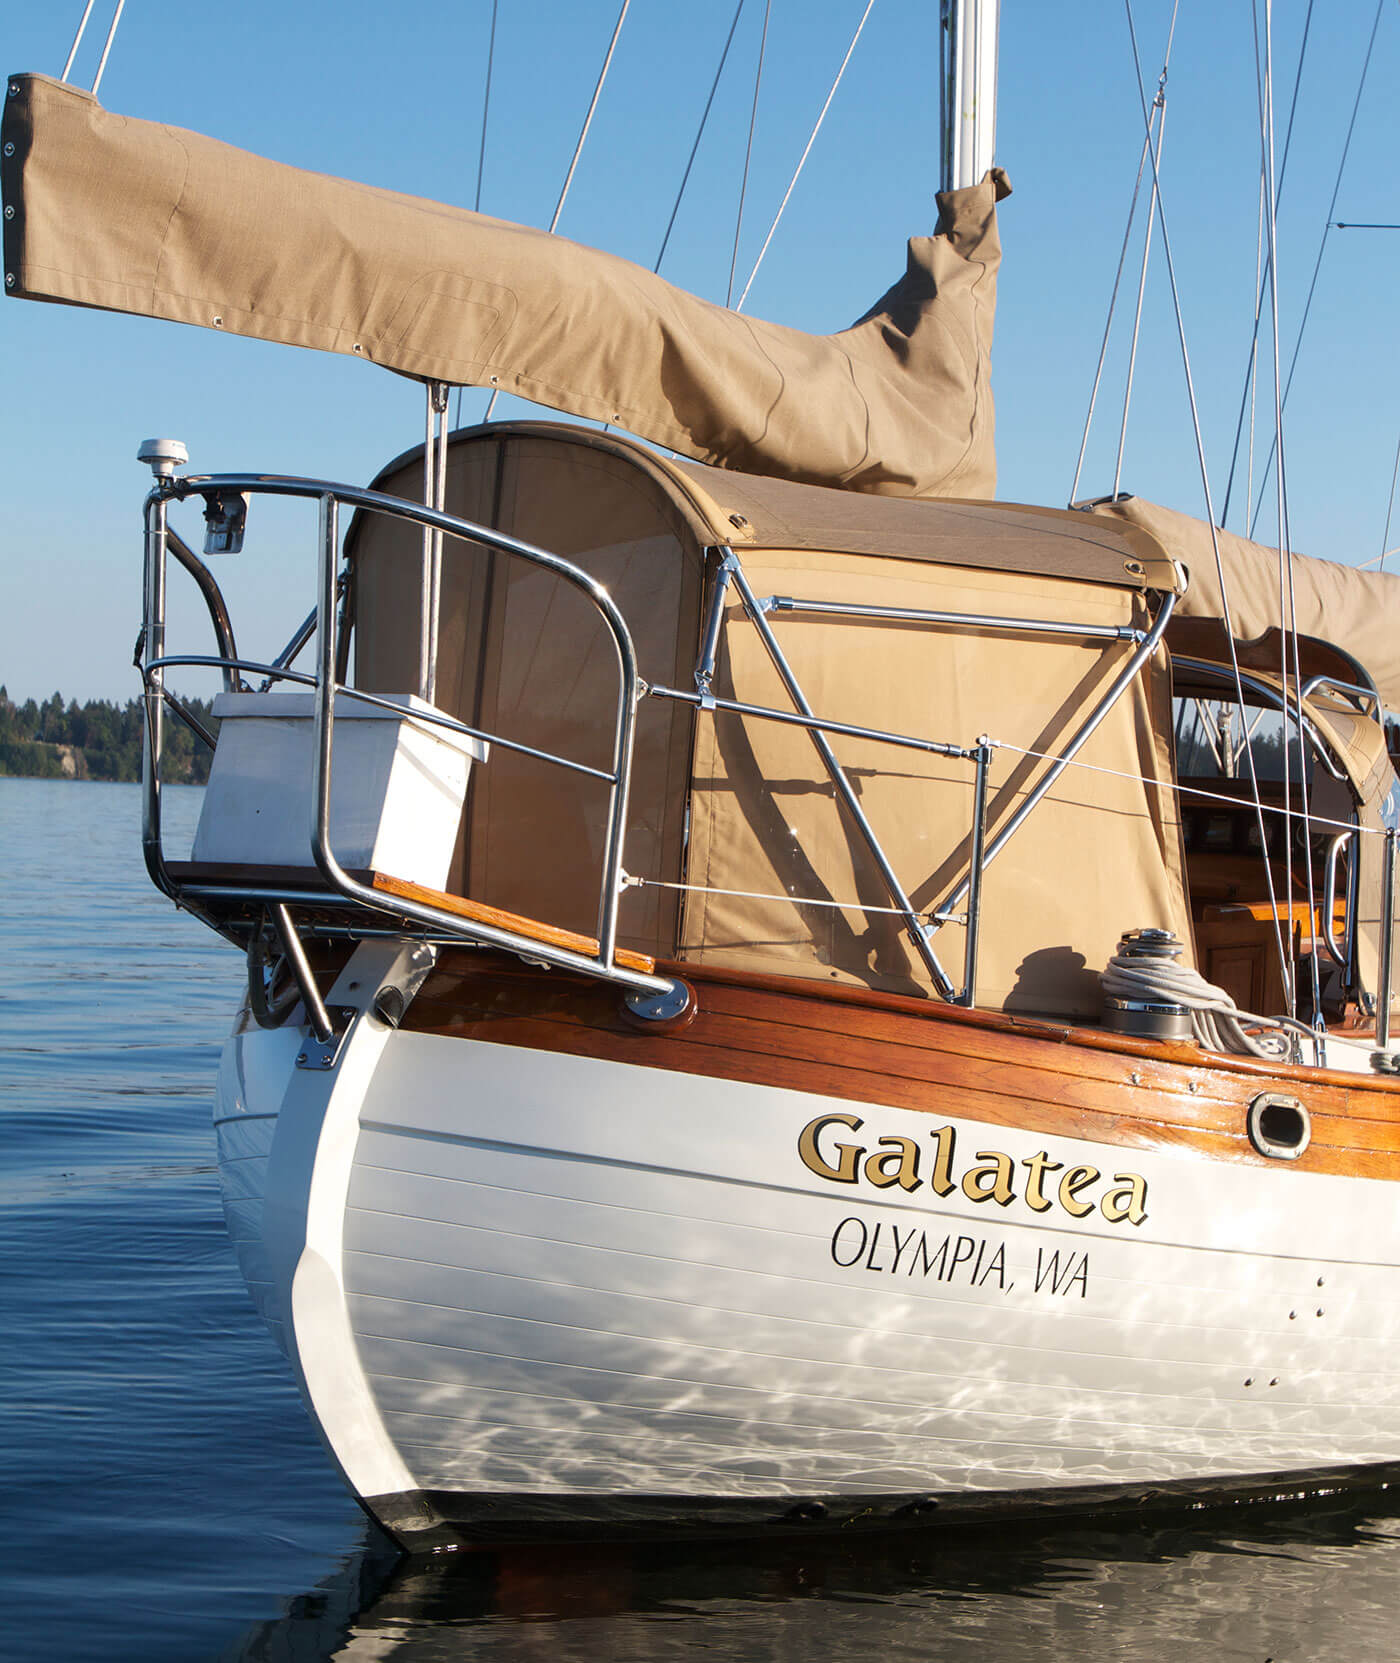 Galatea sailboat featuring sailcover and enclosure made using Sunbrella fabrics